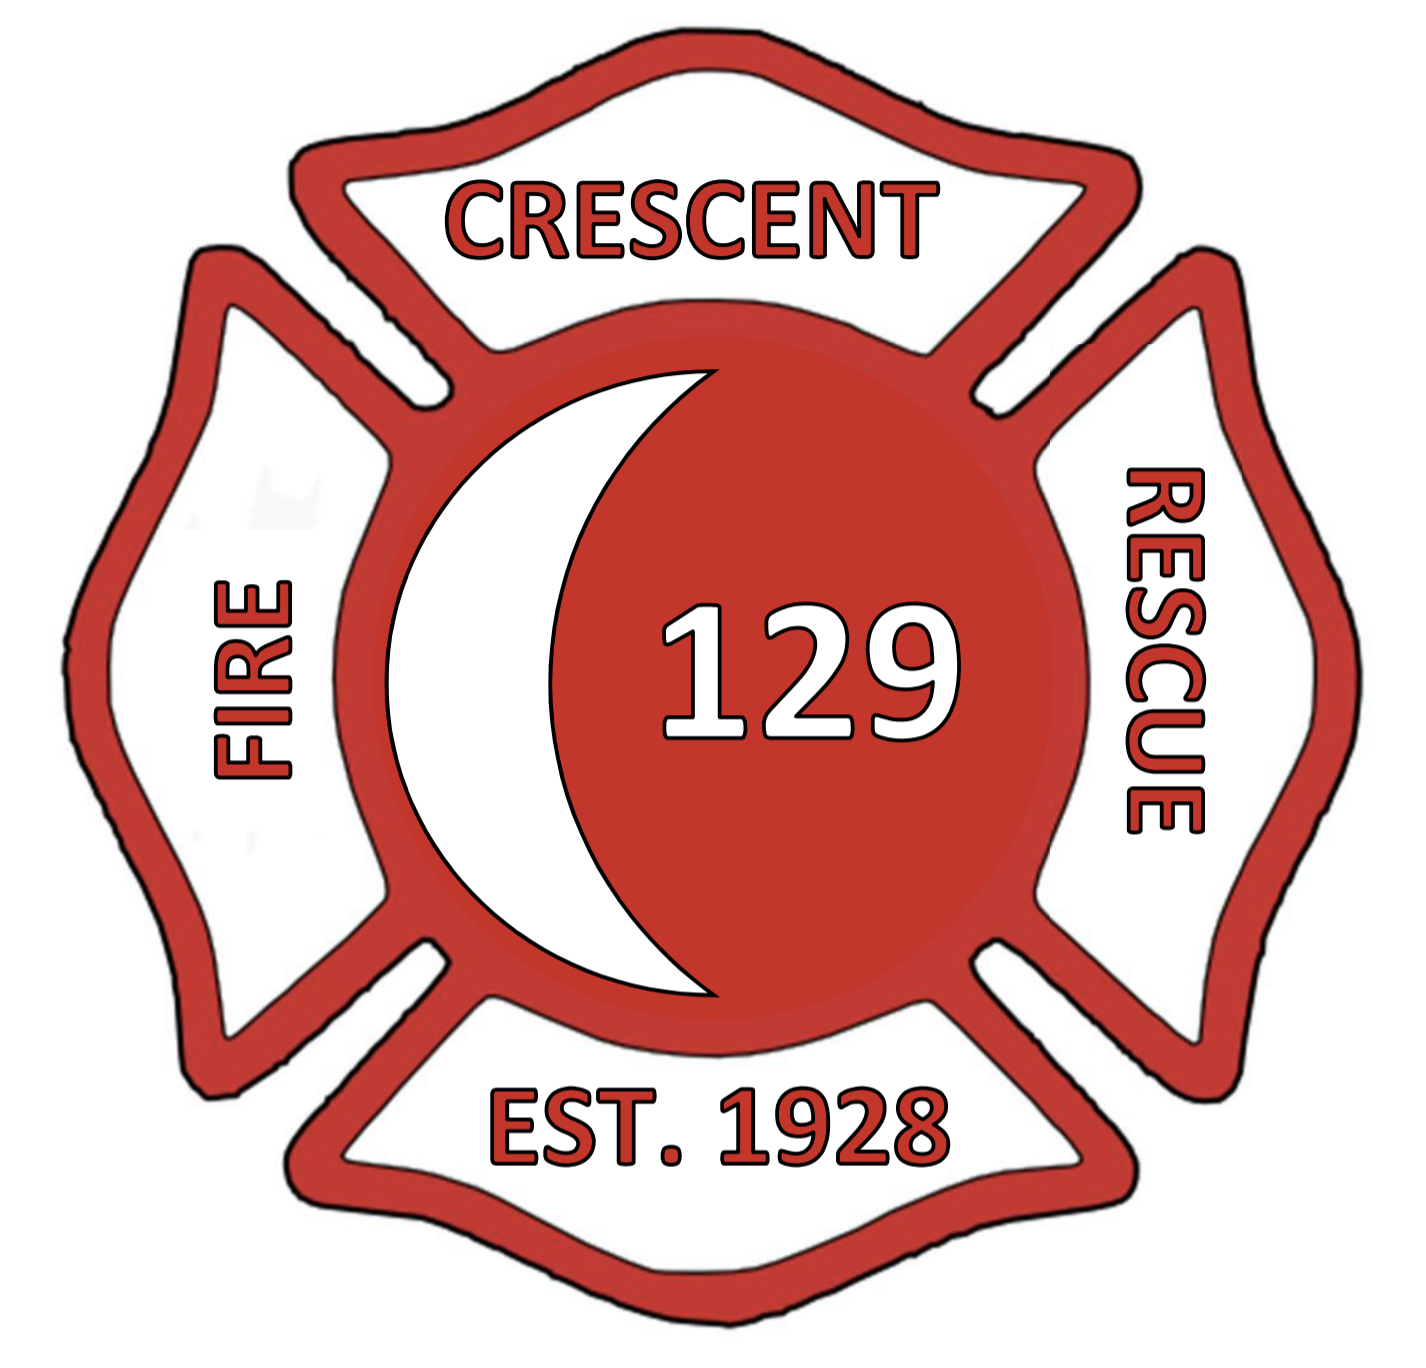 The Crescent Township Volunteer Fire Department